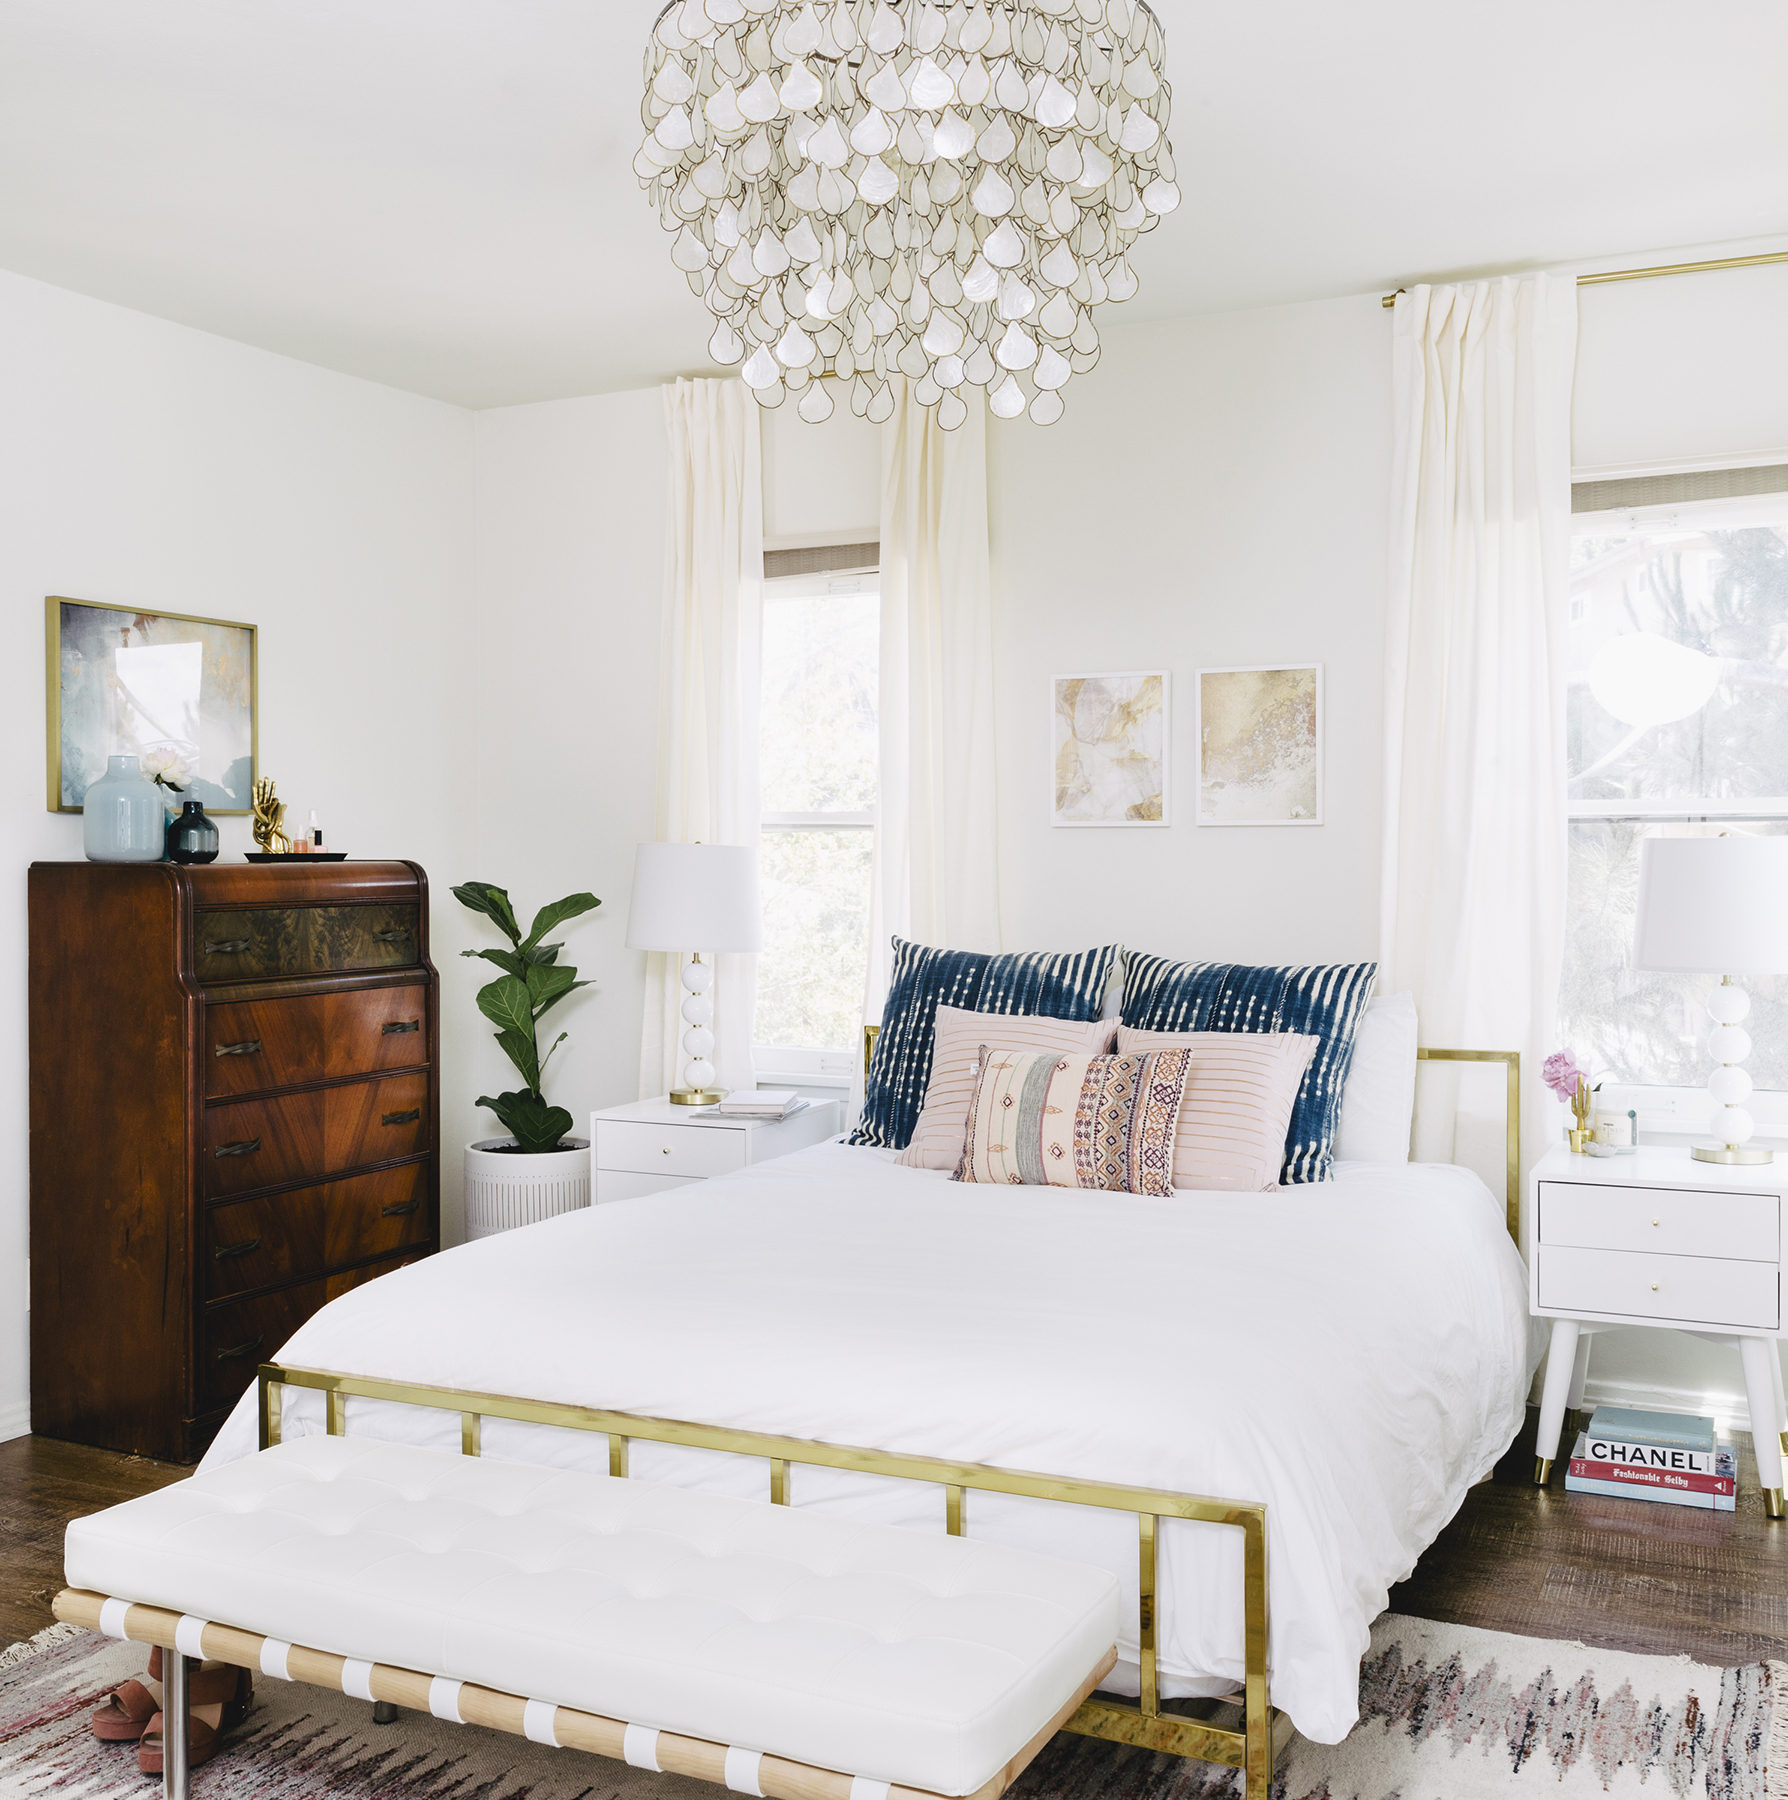 Bedroom with summer-ready bed